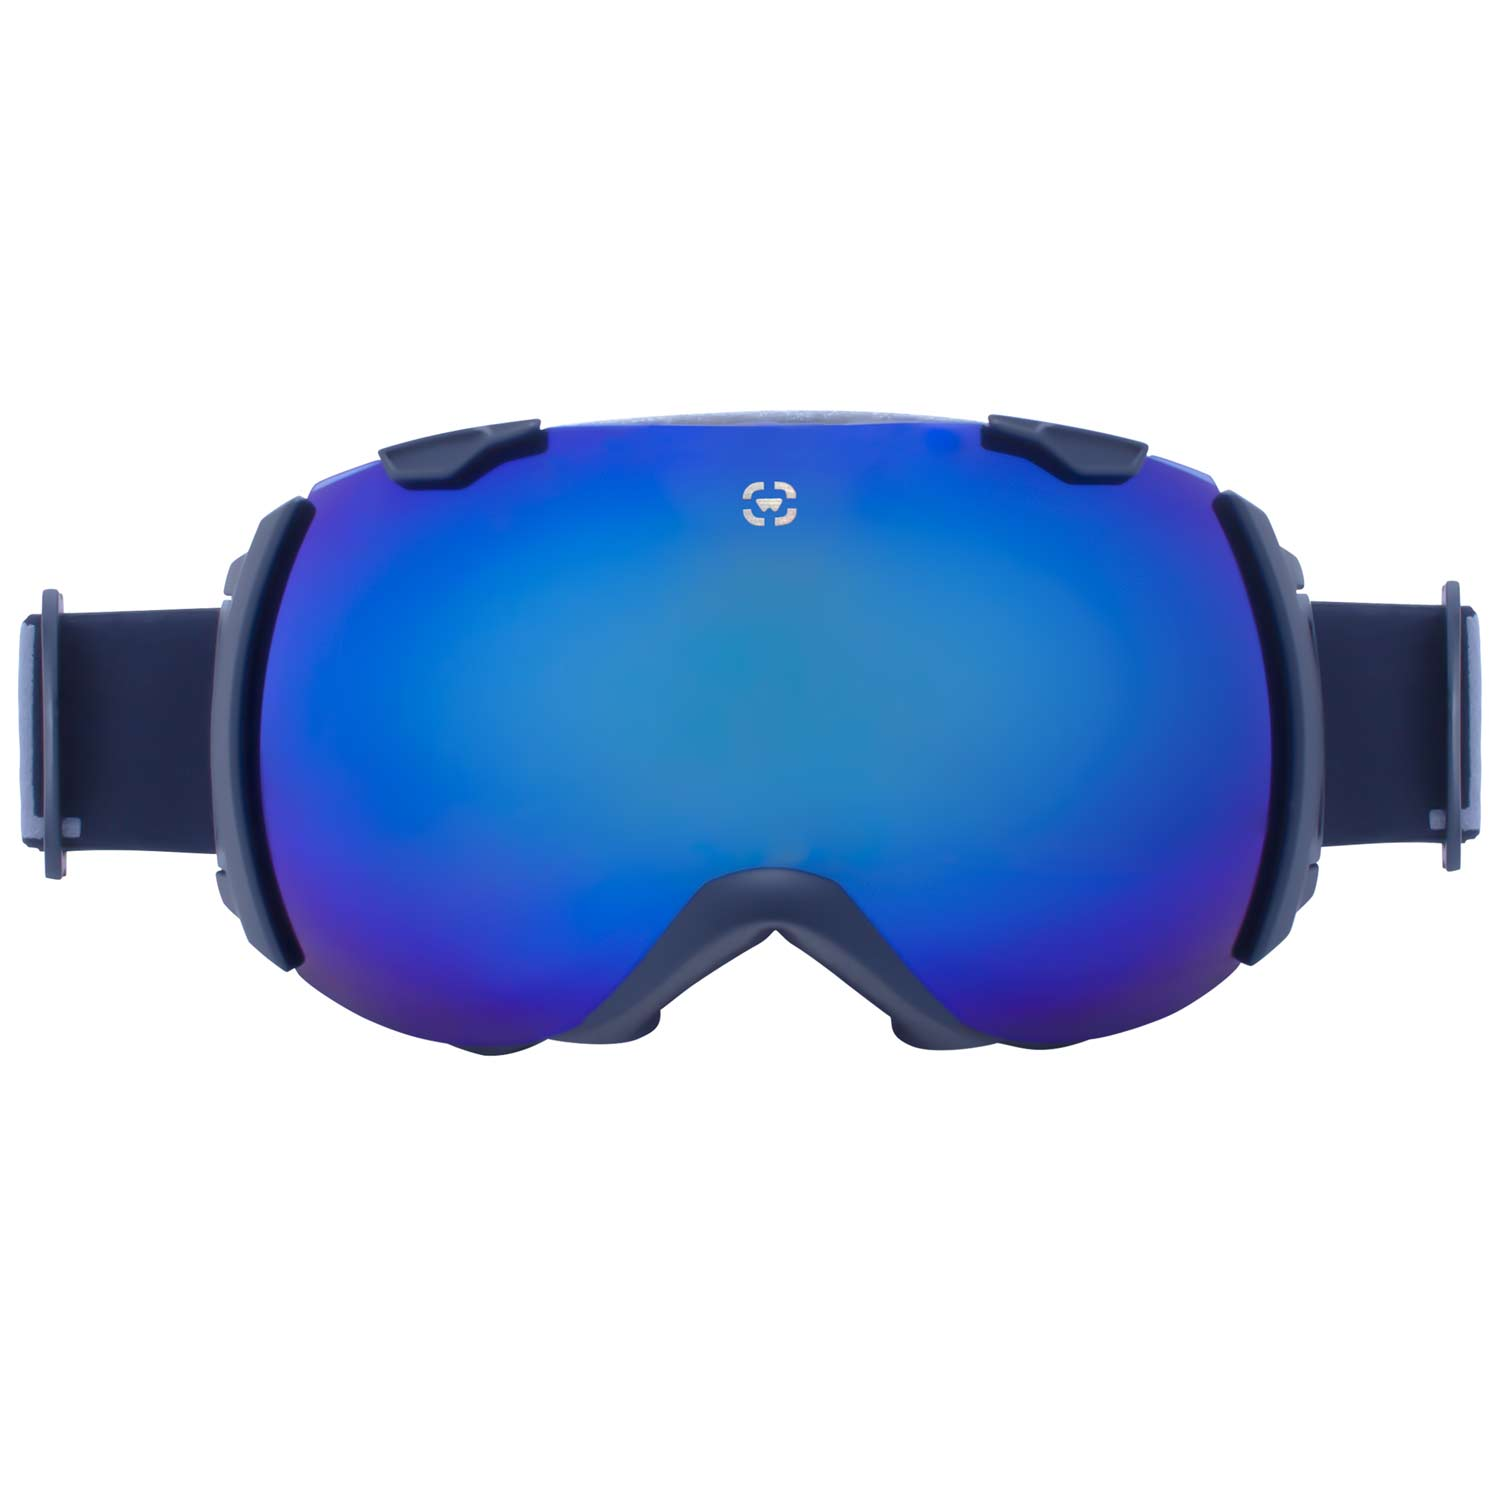 Winterial Globe Goggles | Ski | Snowboard |Snowmobile Goggles All Mountain | UV Protection | Black by Winterial